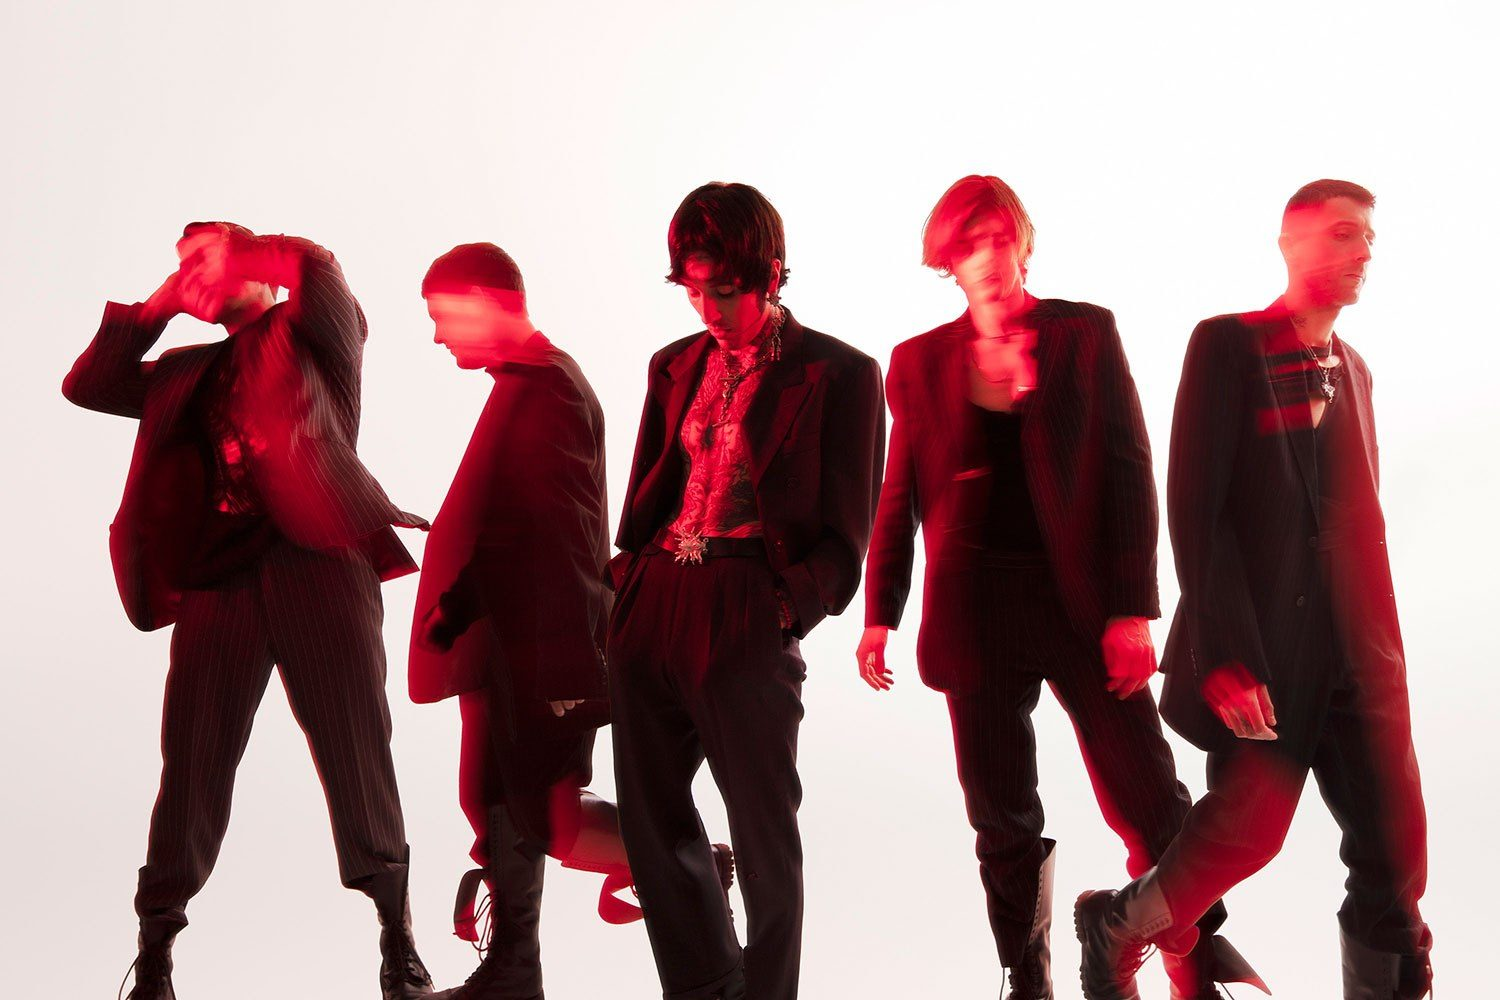 Bring Me The Horizon have dropped a new single ahead of their UK headline tour